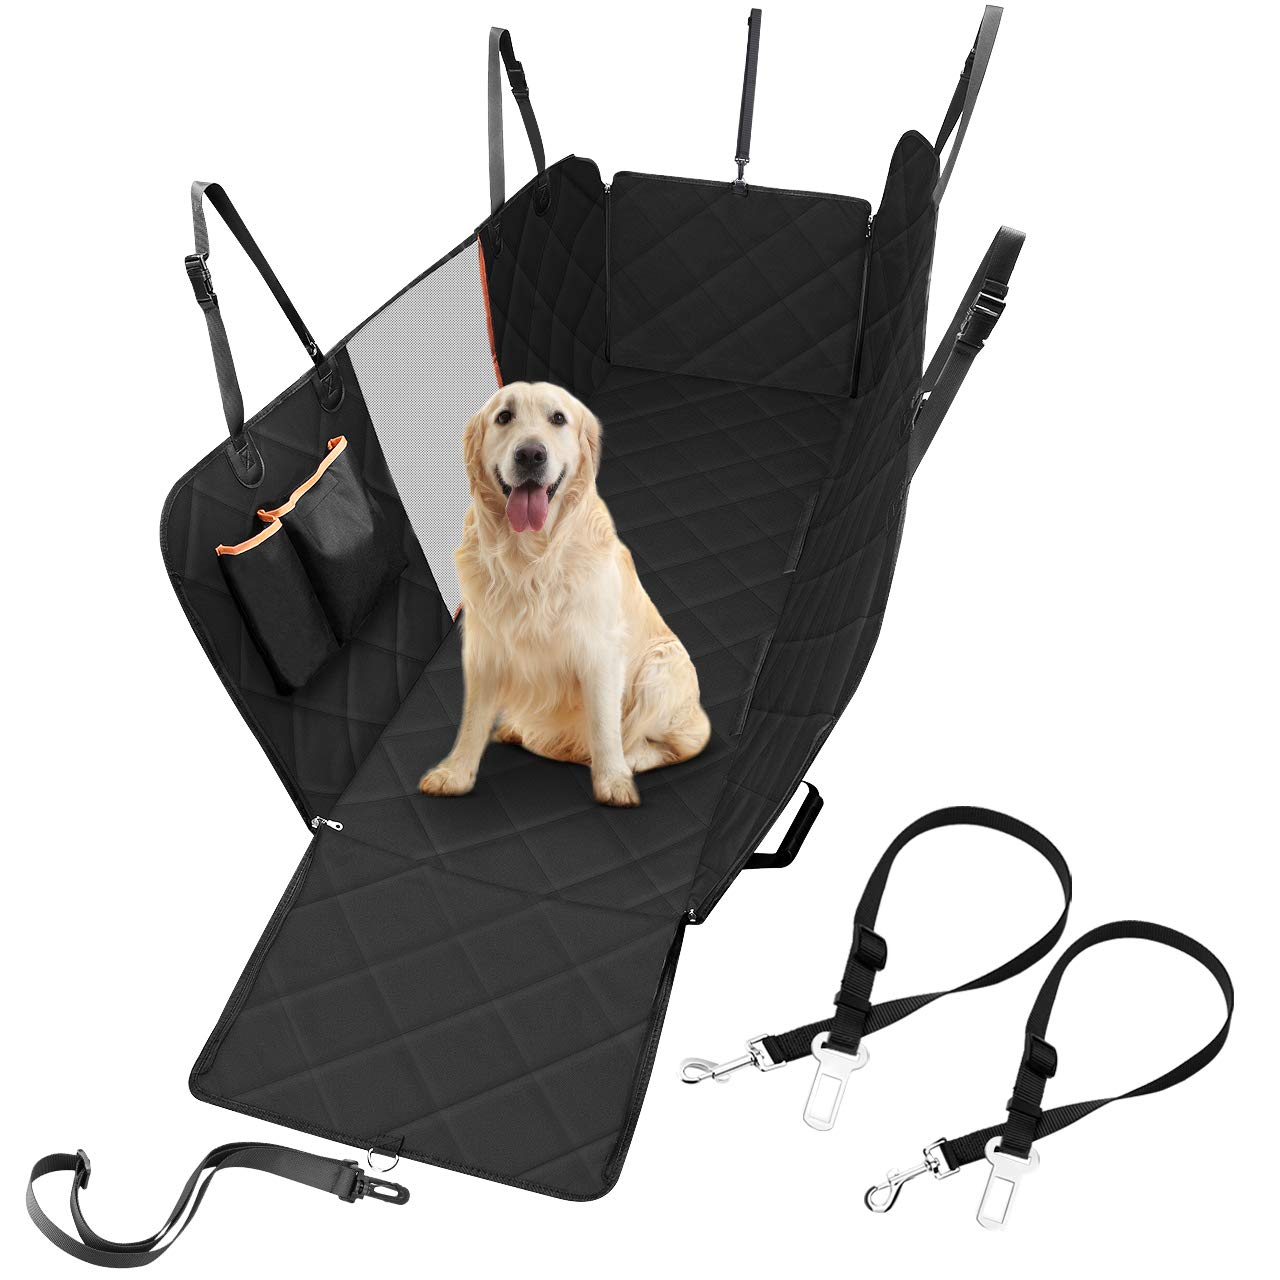 Stupendous Dog Car Seat Cover With Mesh Viewing Window Atmoko Durable Scratch Proof Dog Seat Covers With Seat Belts Storage Pocket Side Flaps Waterproof Dog Short Links Chair Design For Home Short Linksinfo